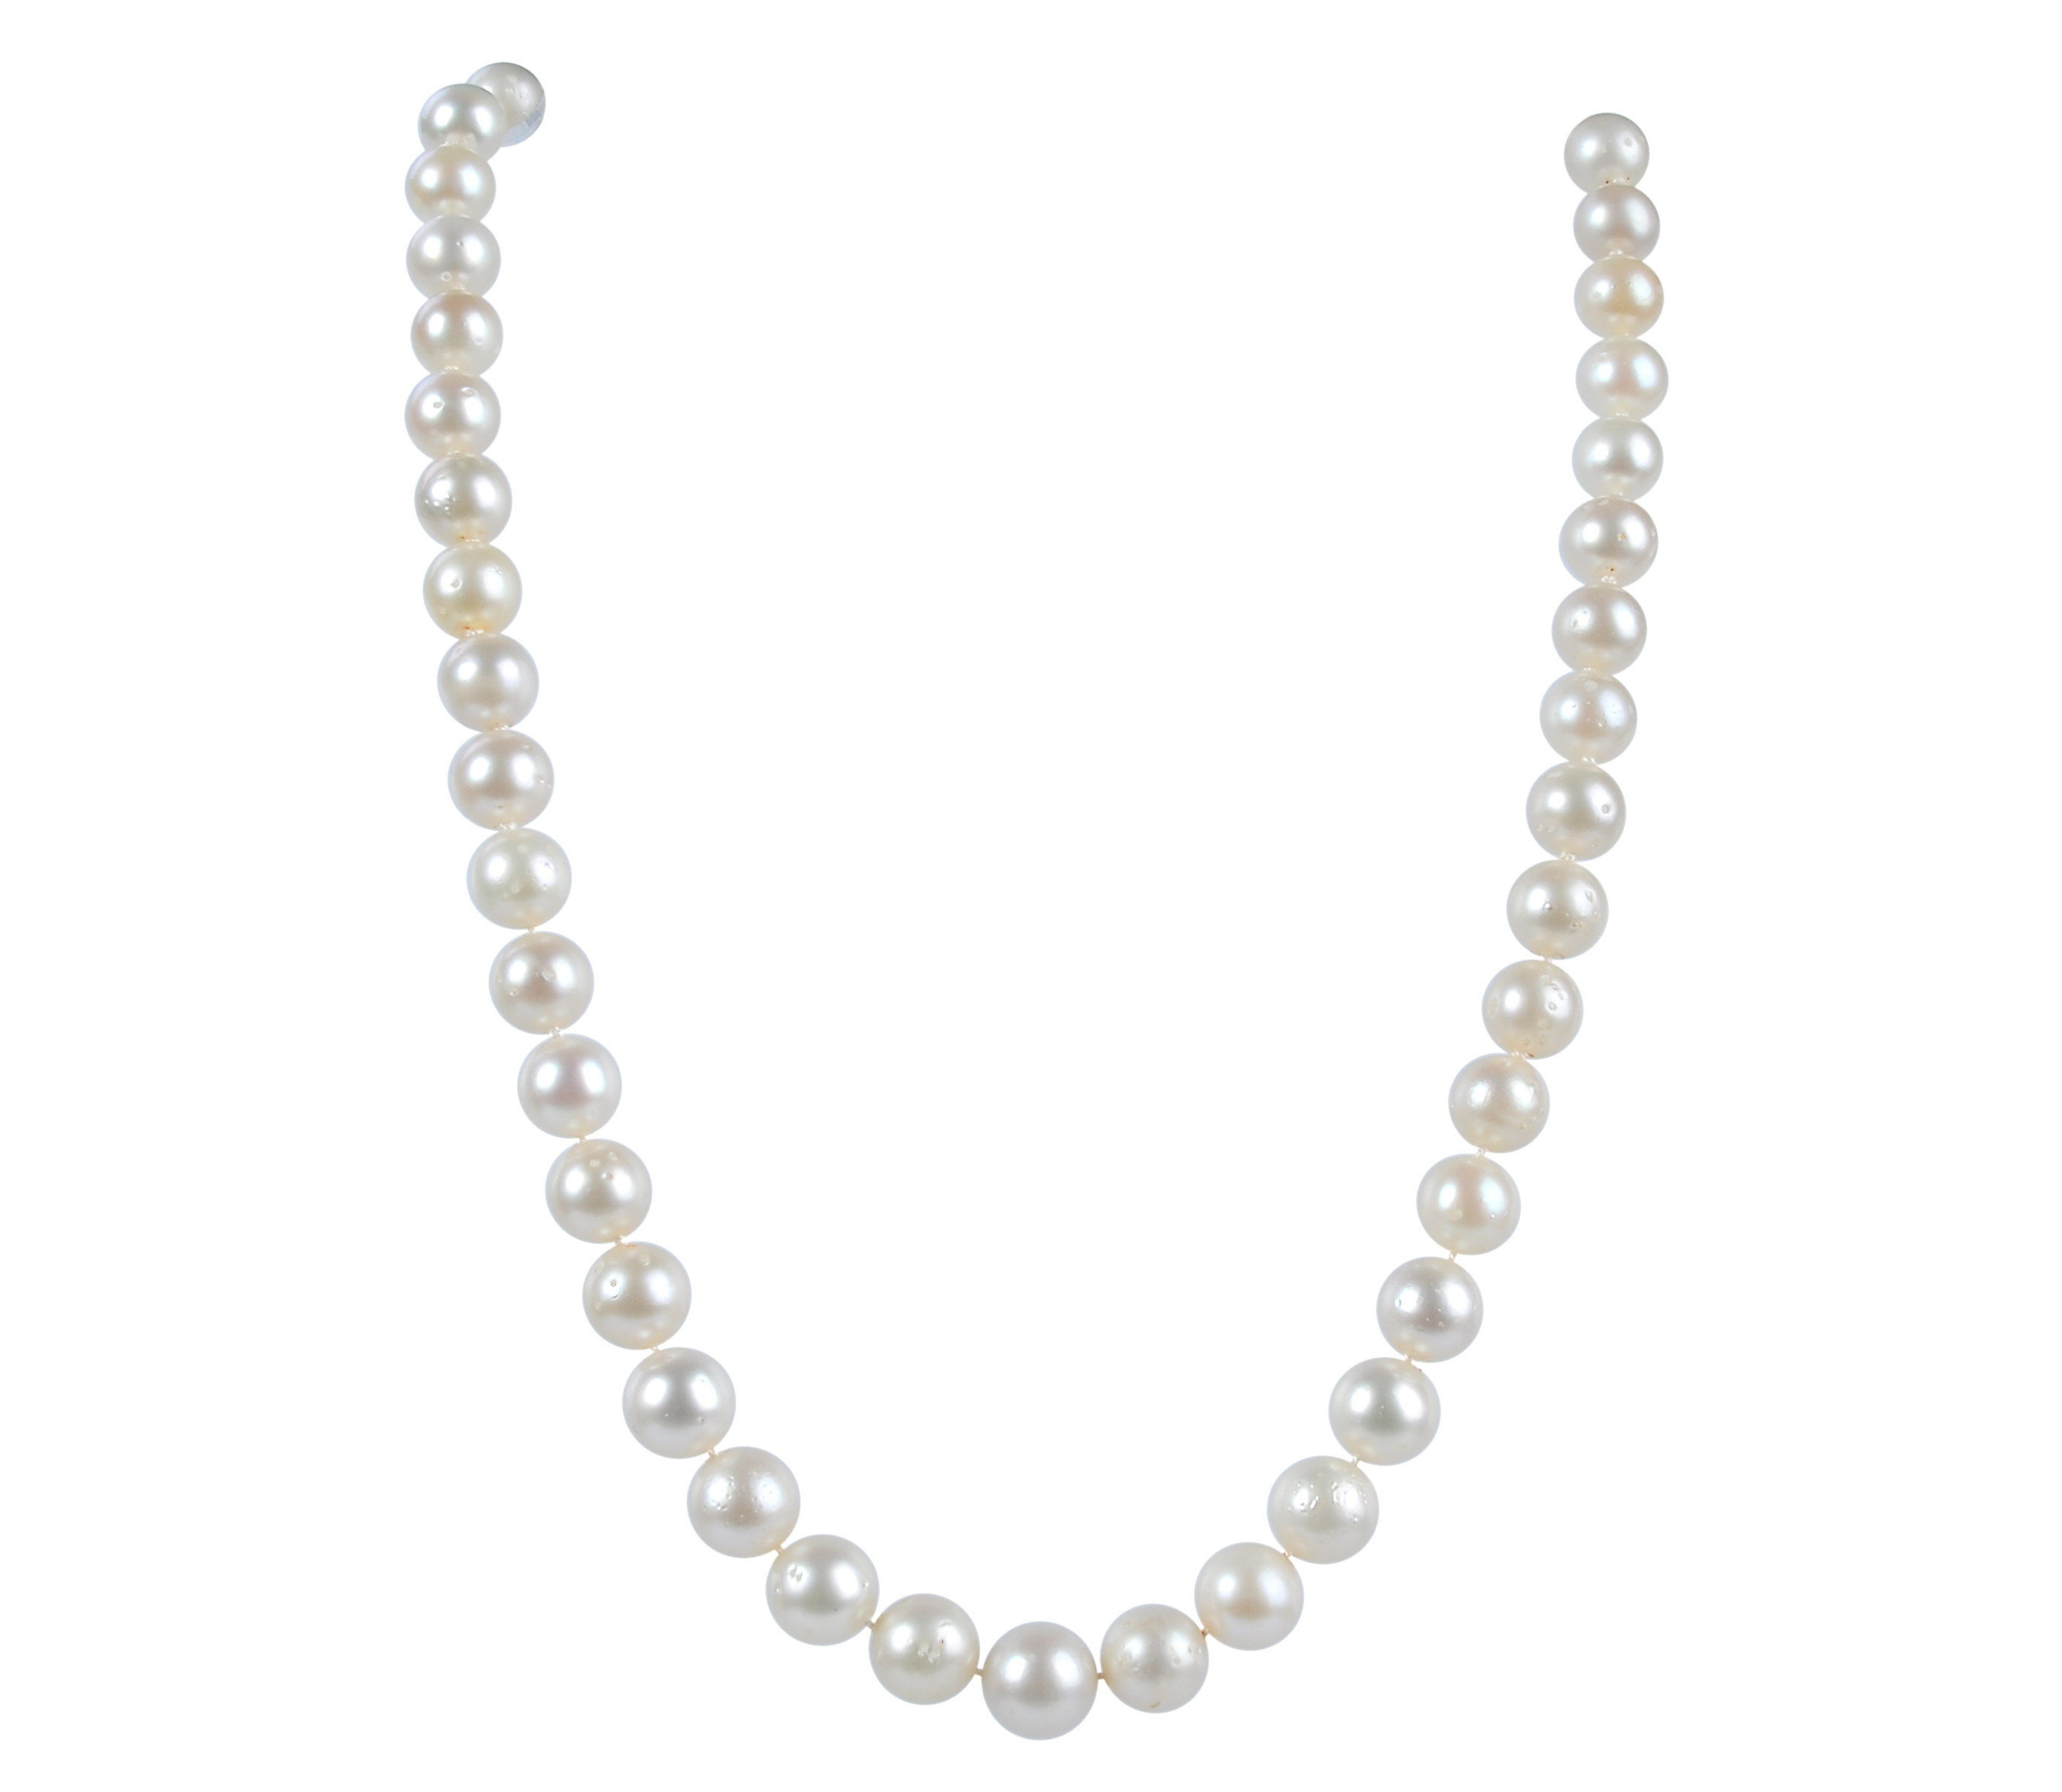 Lustrous White South Sea Pearl Necklace -nk30